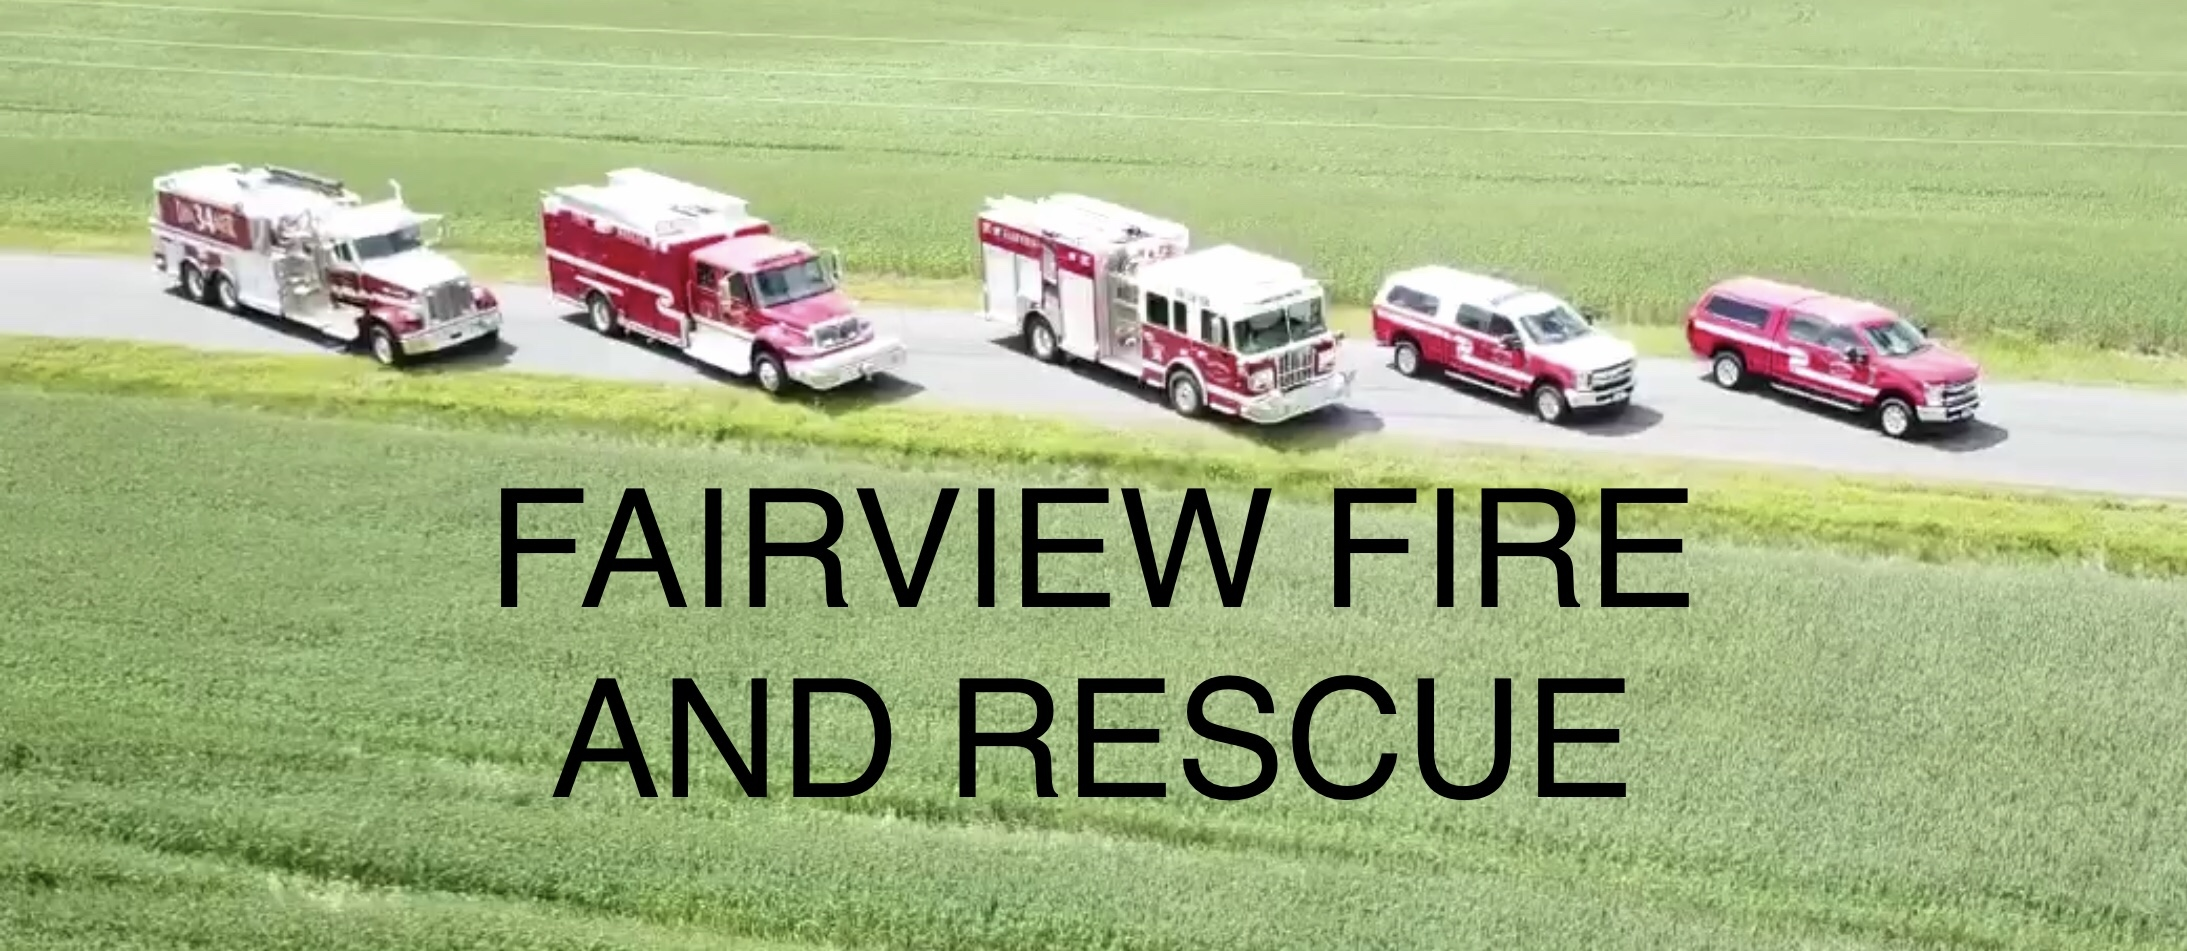 FAIRVIEW FIRE and RESCUE ASSOCIATION INC.